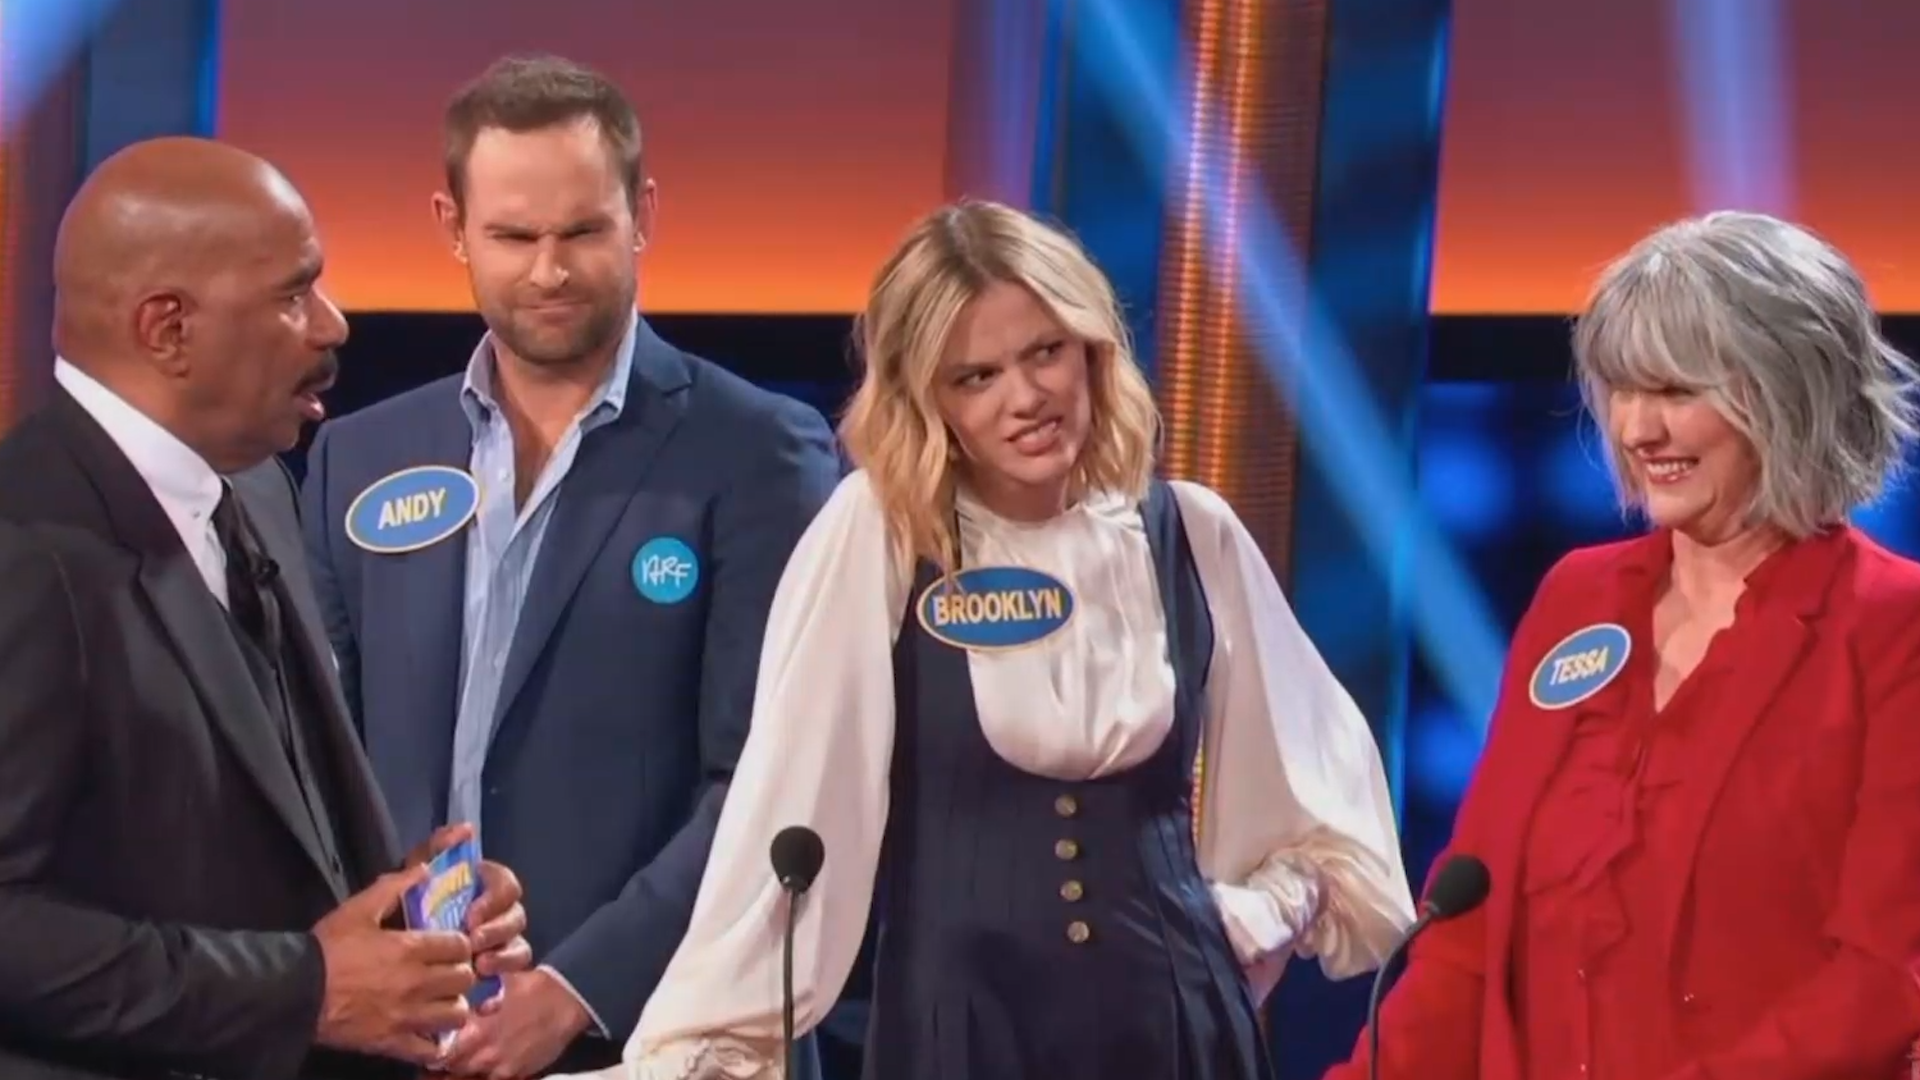 Brooklyn Decker and her mom make it awkward for Andy Roddick on 'Family Feud'